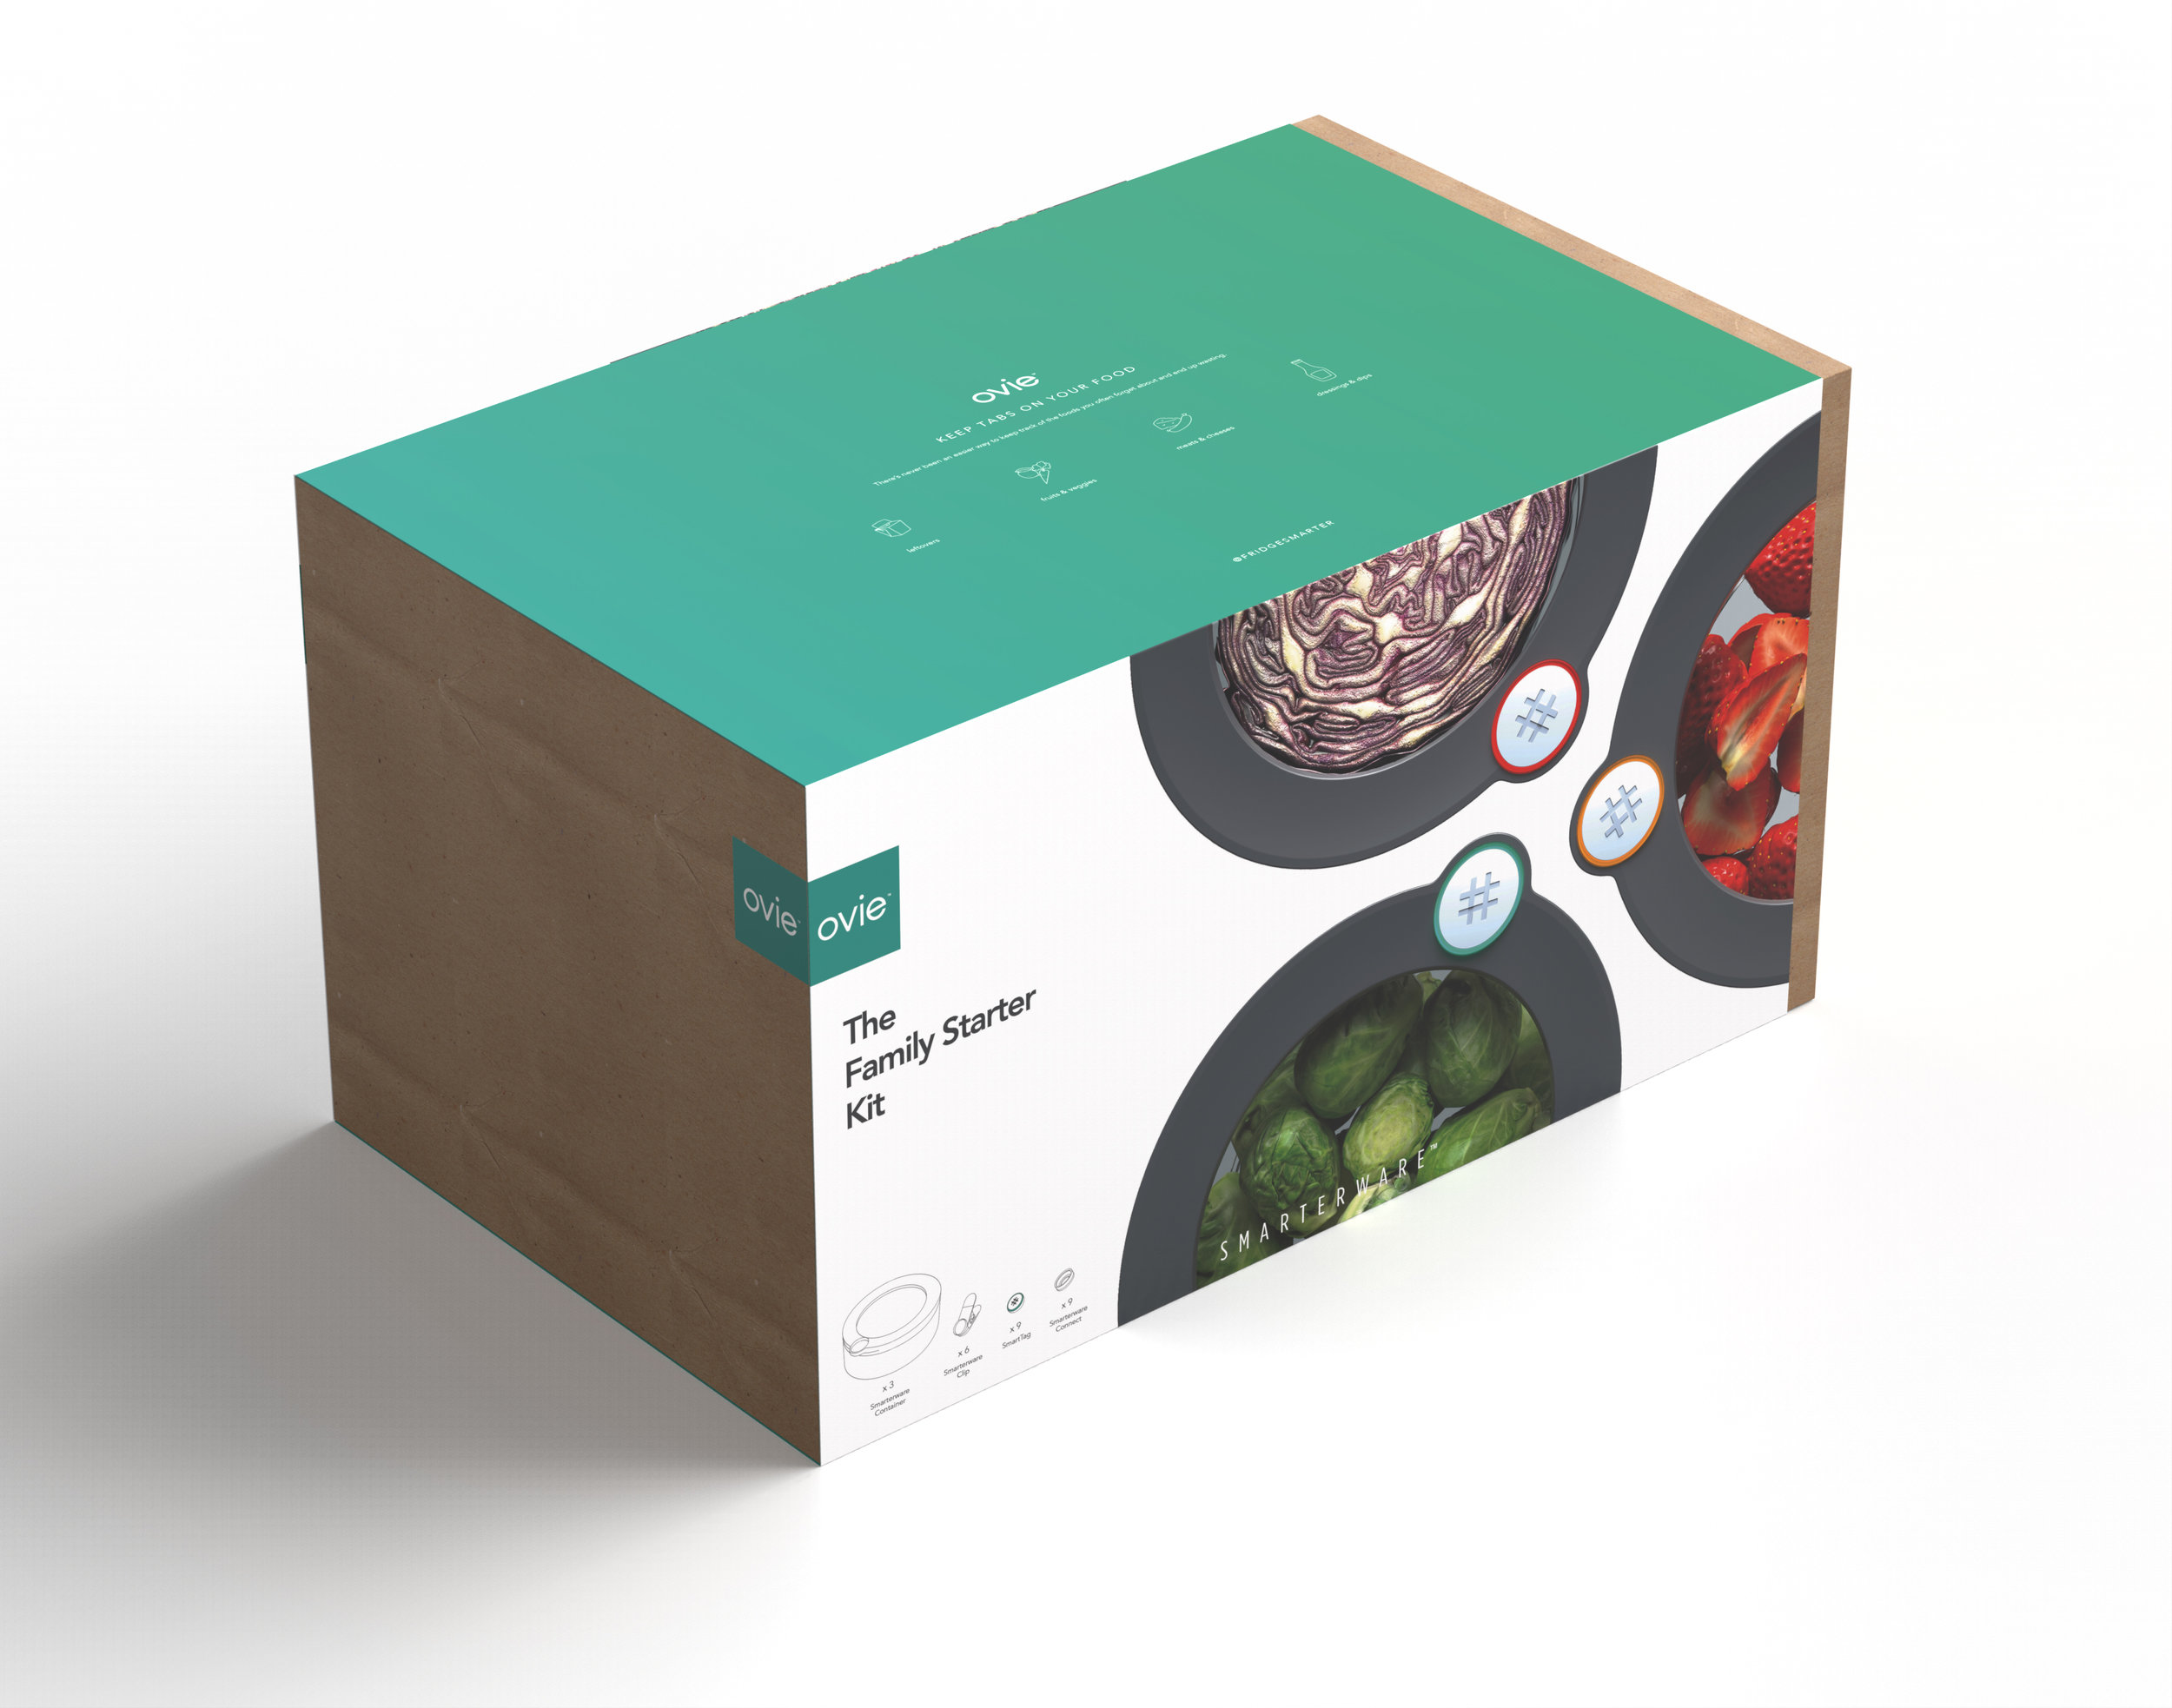 packaging-renderings-01062019.2083.jpg